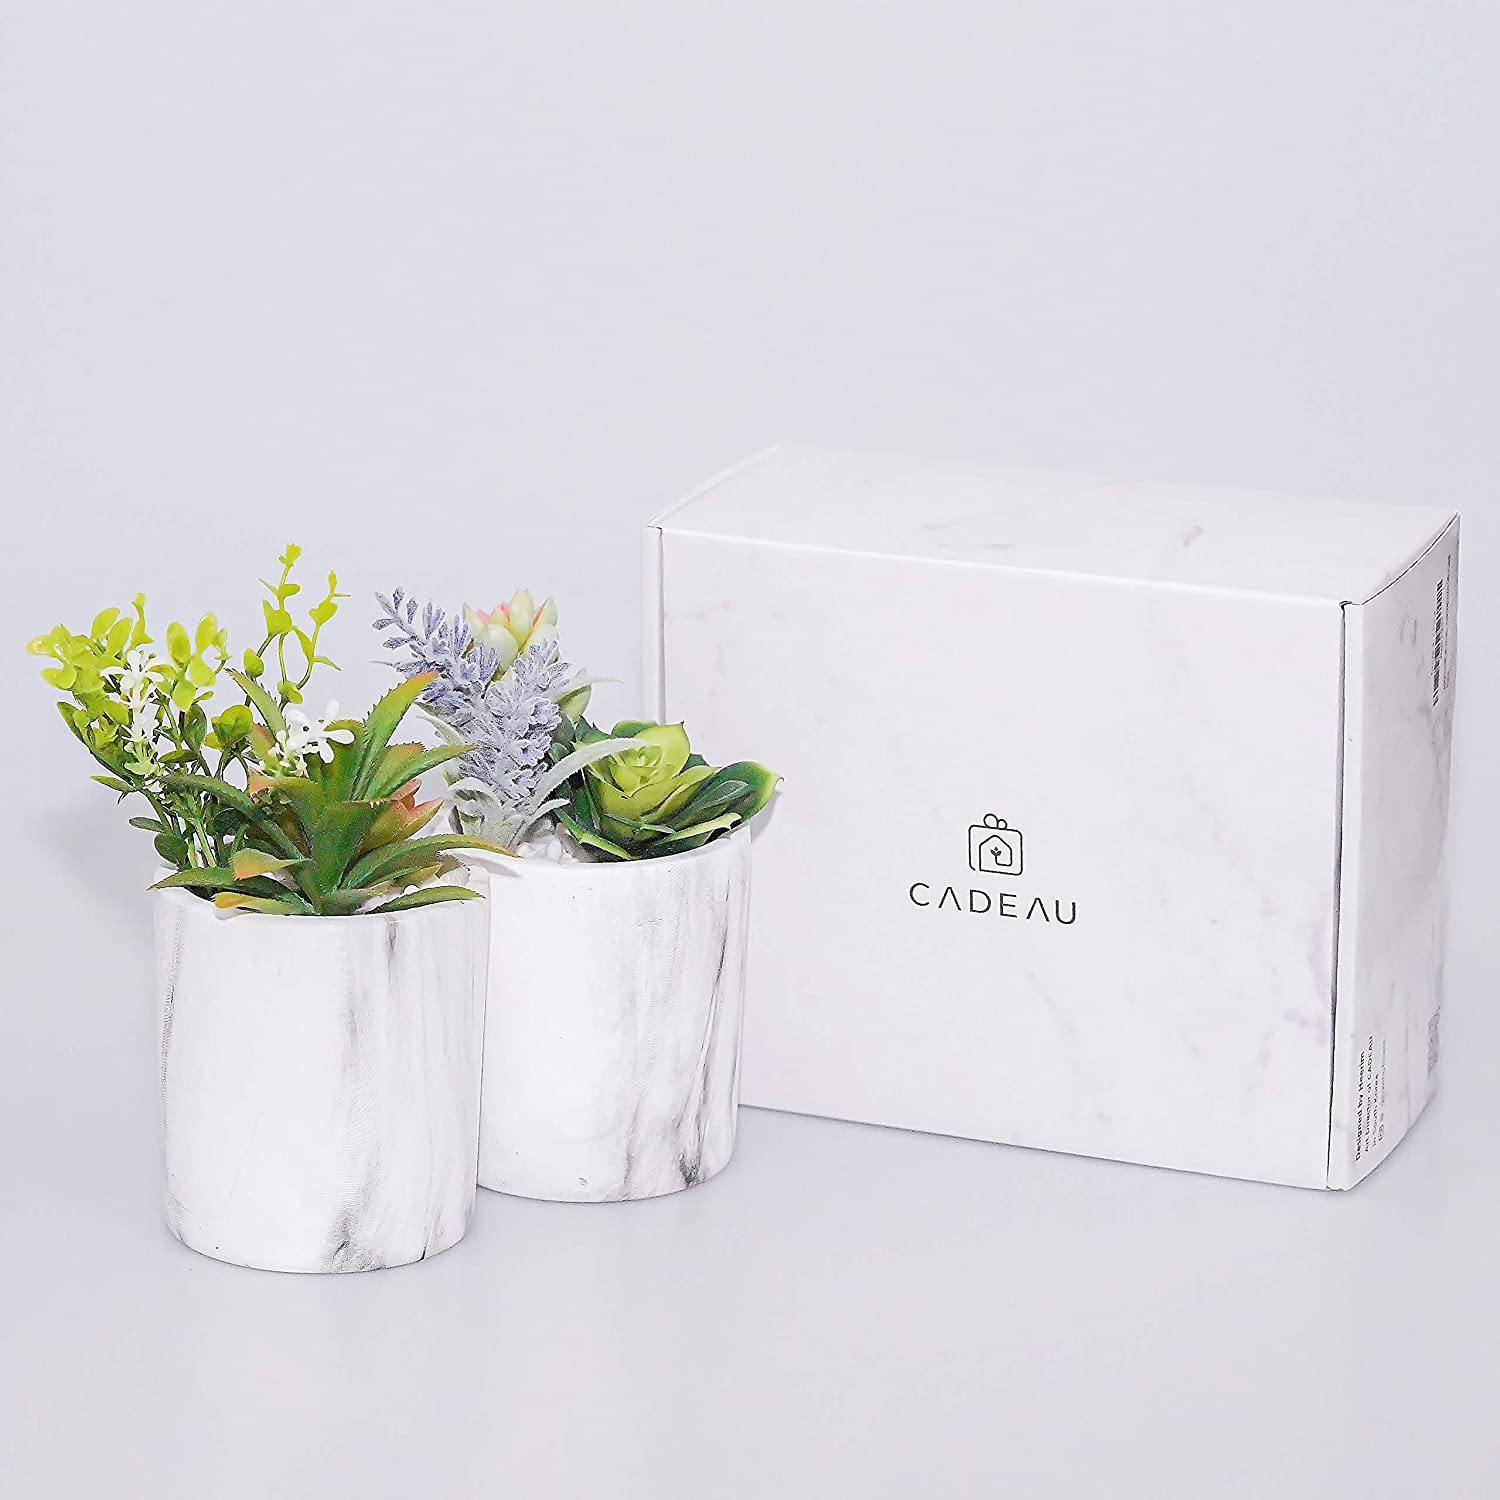 Cadeau Artificial Succulents 6 Aesthetic Fake Faux Succulents In 2 Pots Faux Plants For Room Decoration Indoor Plants For Greenery Decor In Dorm Office Dining Table Bedroom Kitchen Bookshelf